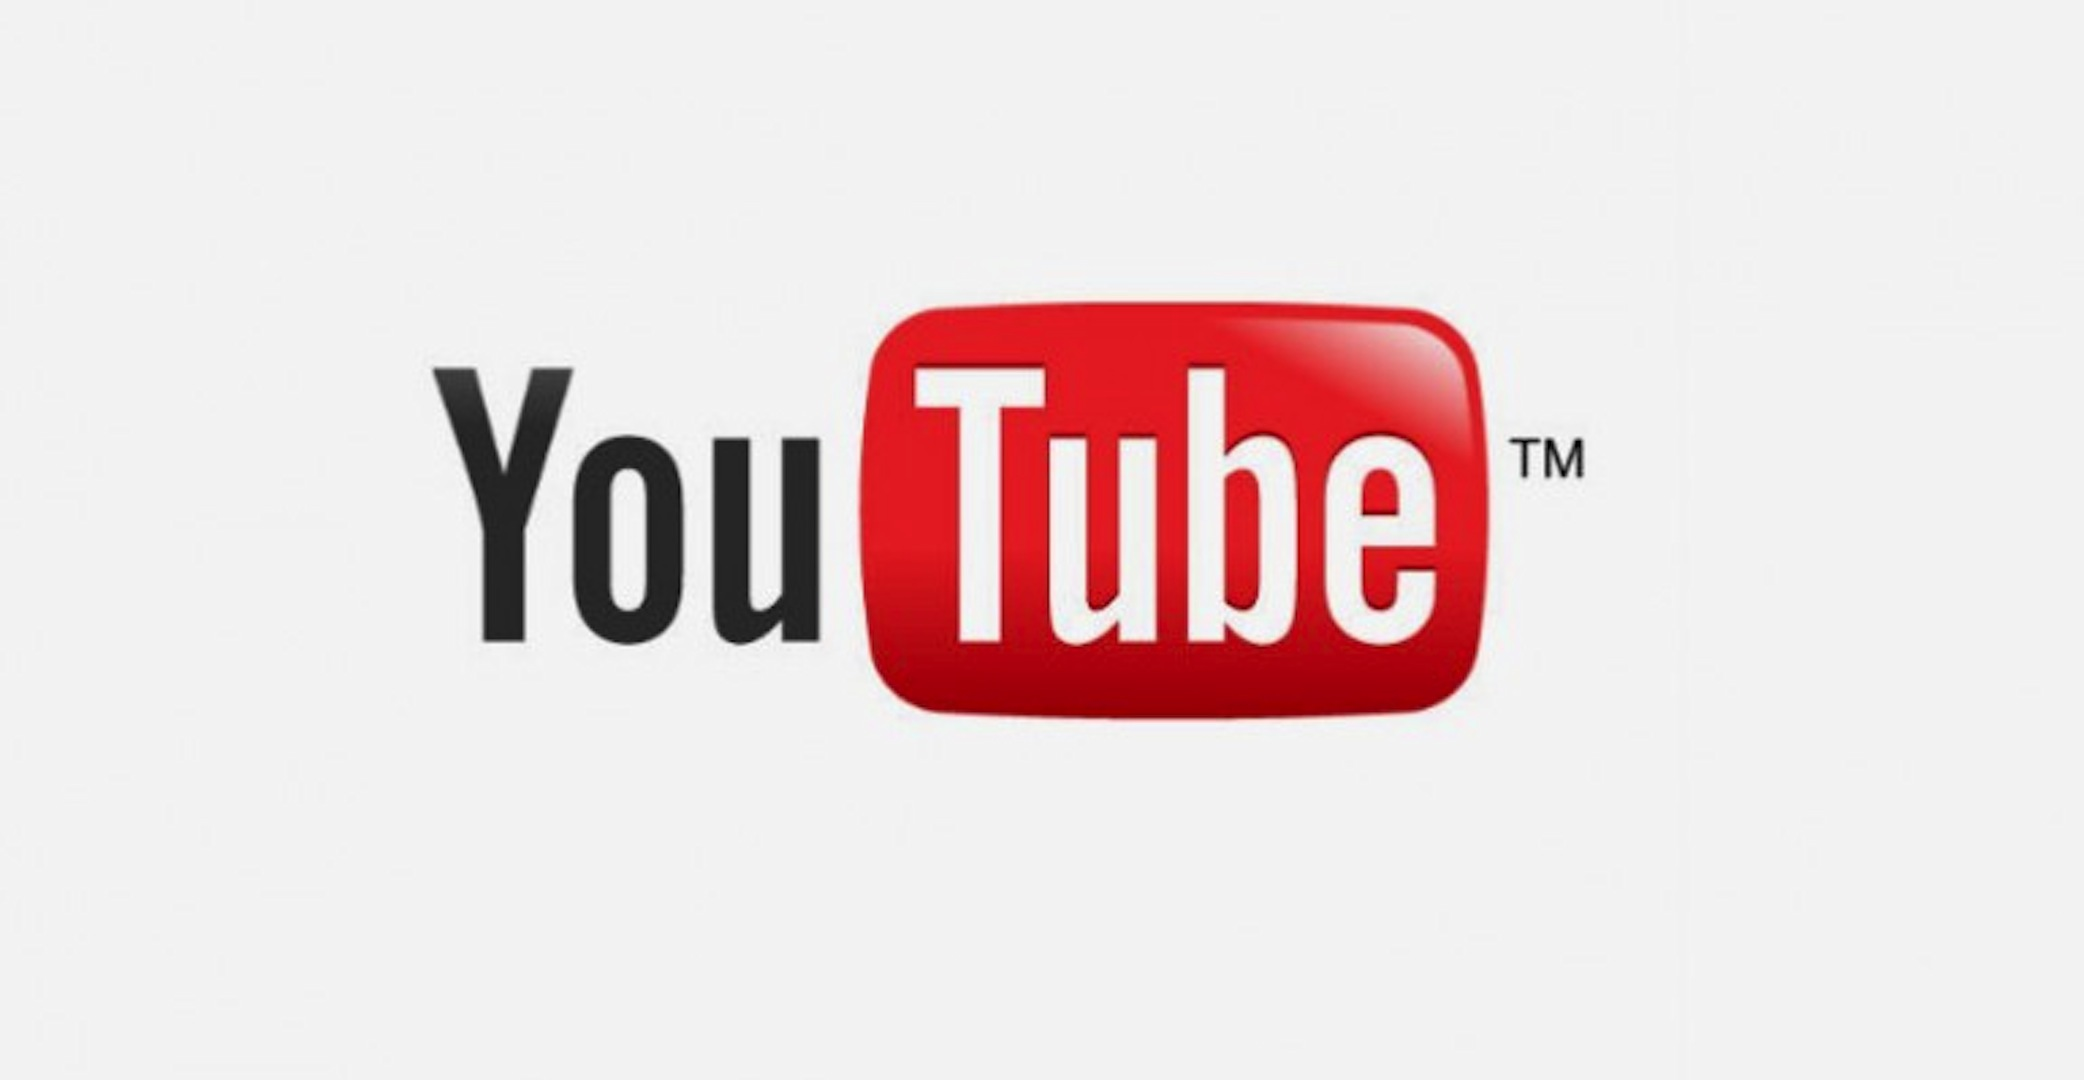 YouTube to Offer Ad-Free Subscriptions